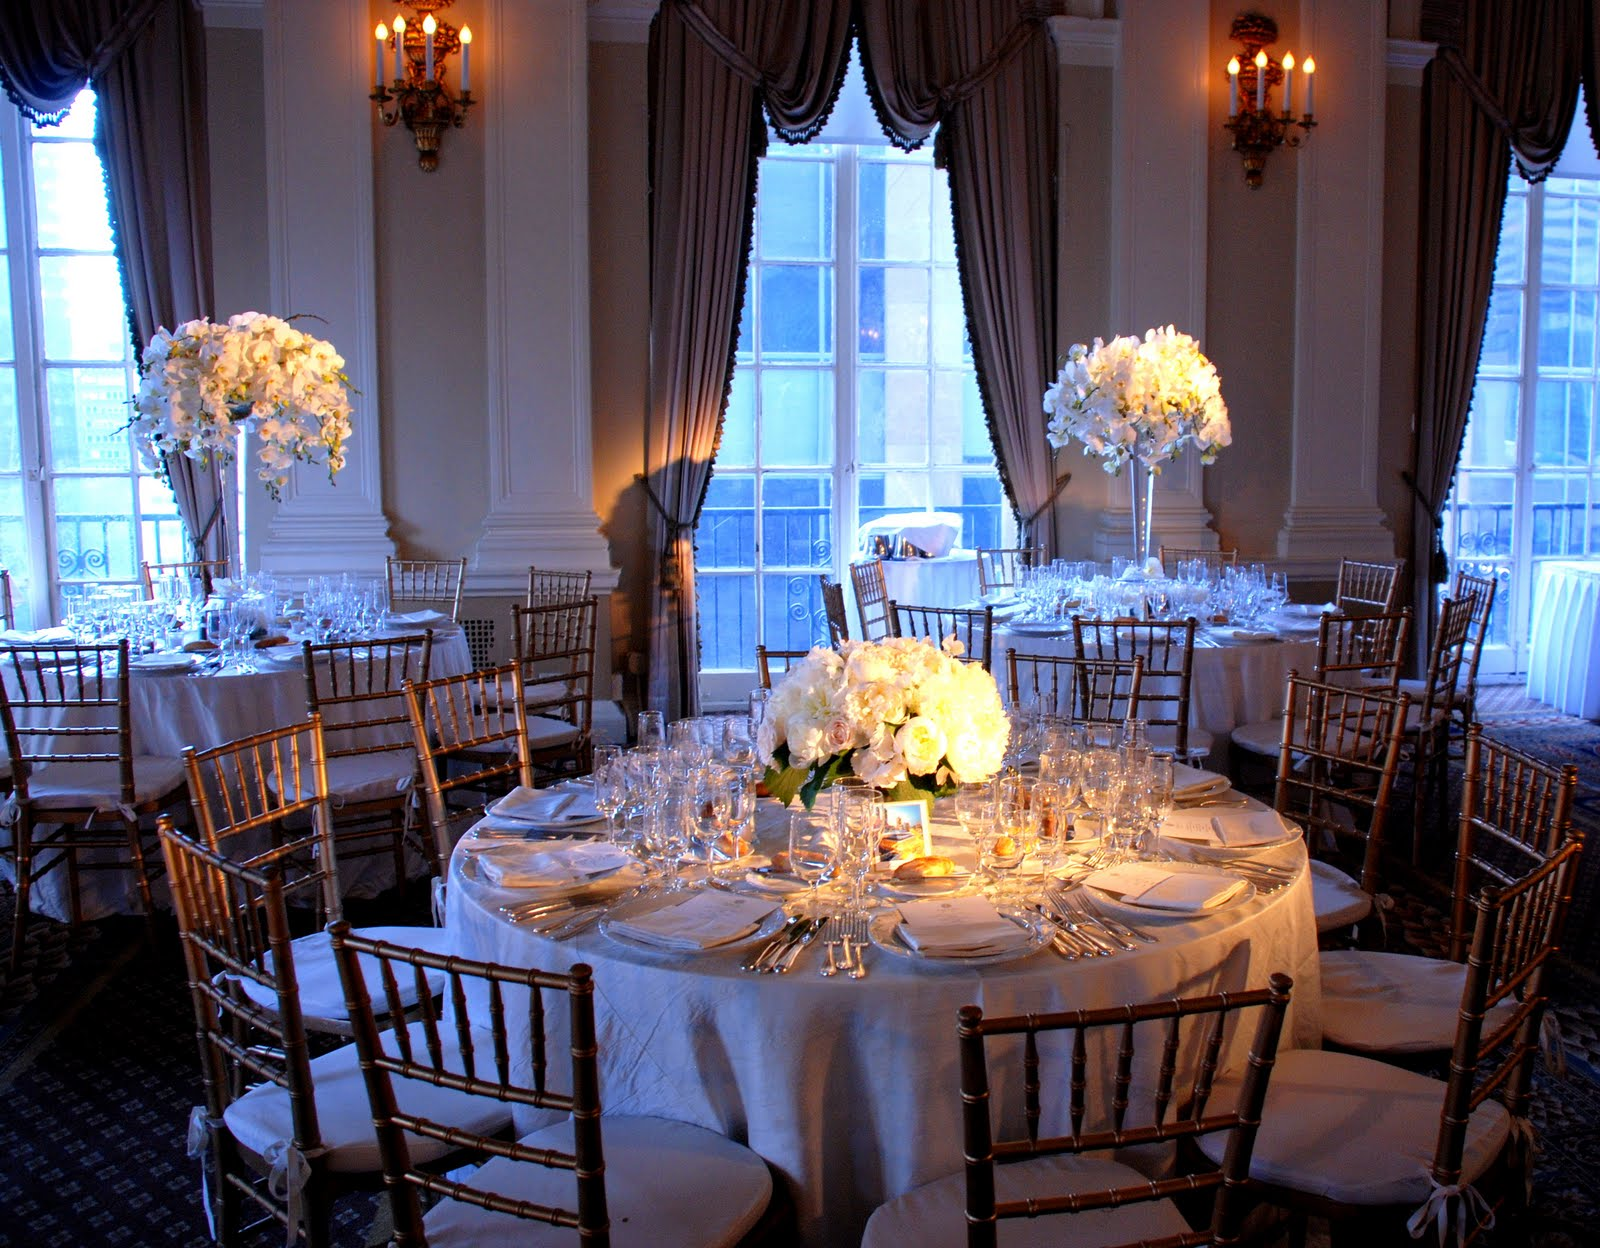 Tall centerpieces seem to have